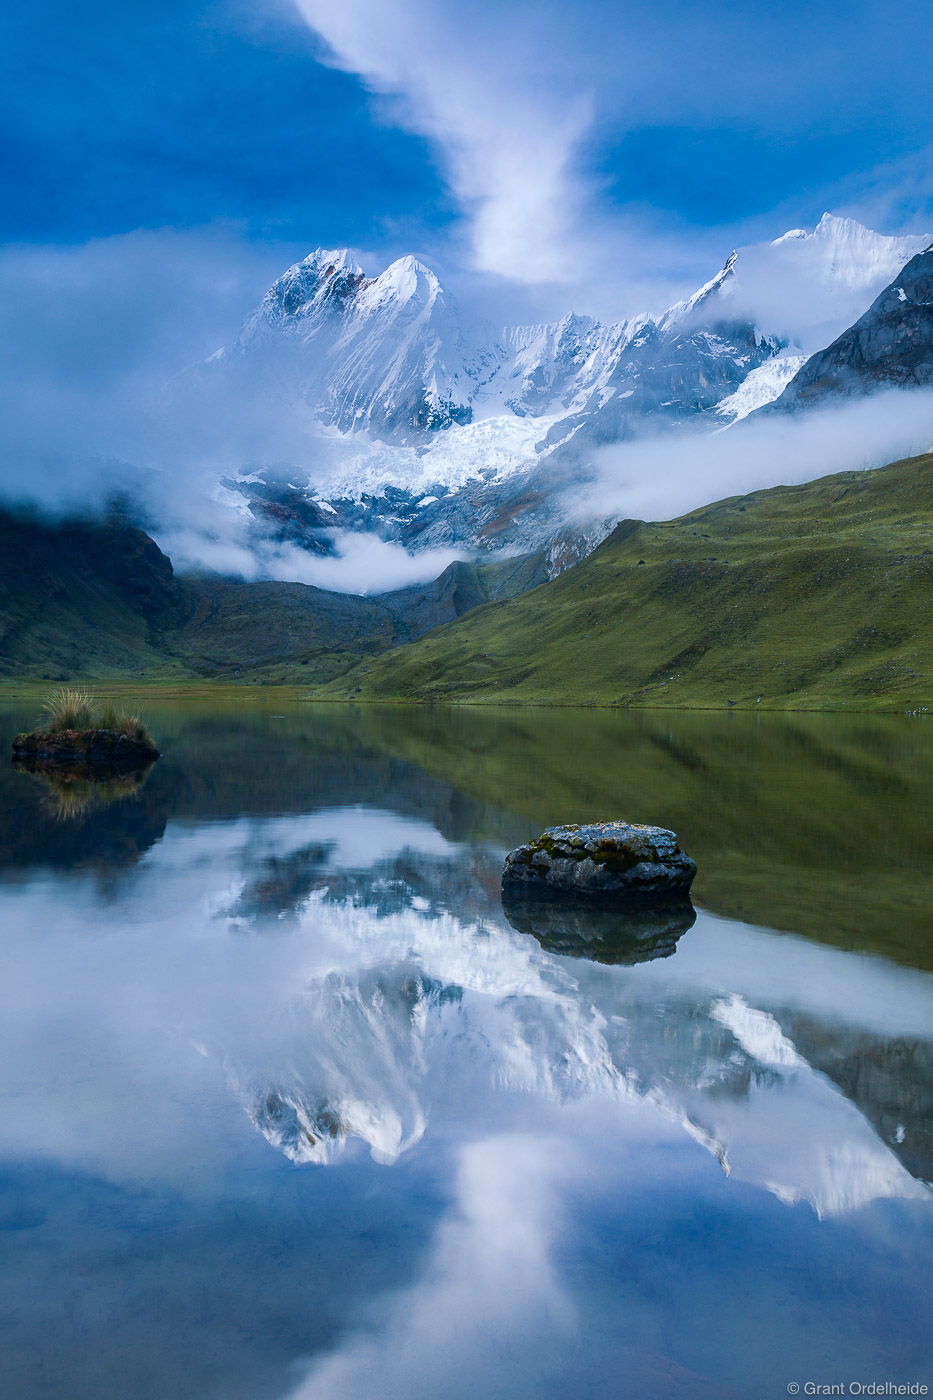 At 20,098 feet, Jirishanca is the tenth highest mountain in Peru and the third highest in Cordillera Huayhuash.